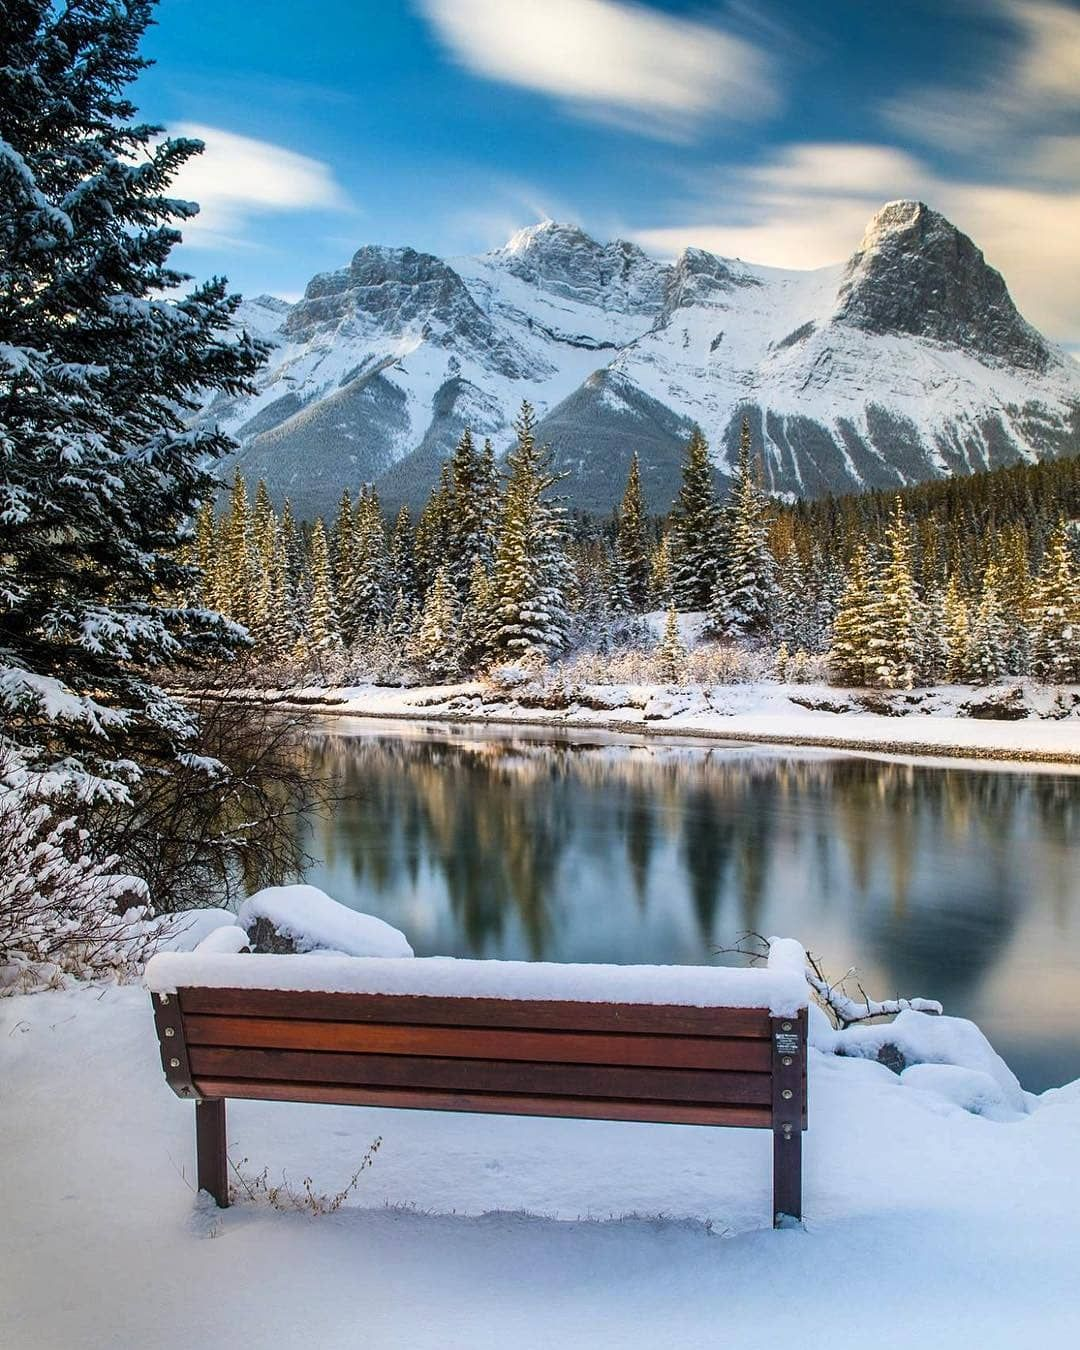 I Could Sit Here For Hours Winter Scenery Winter